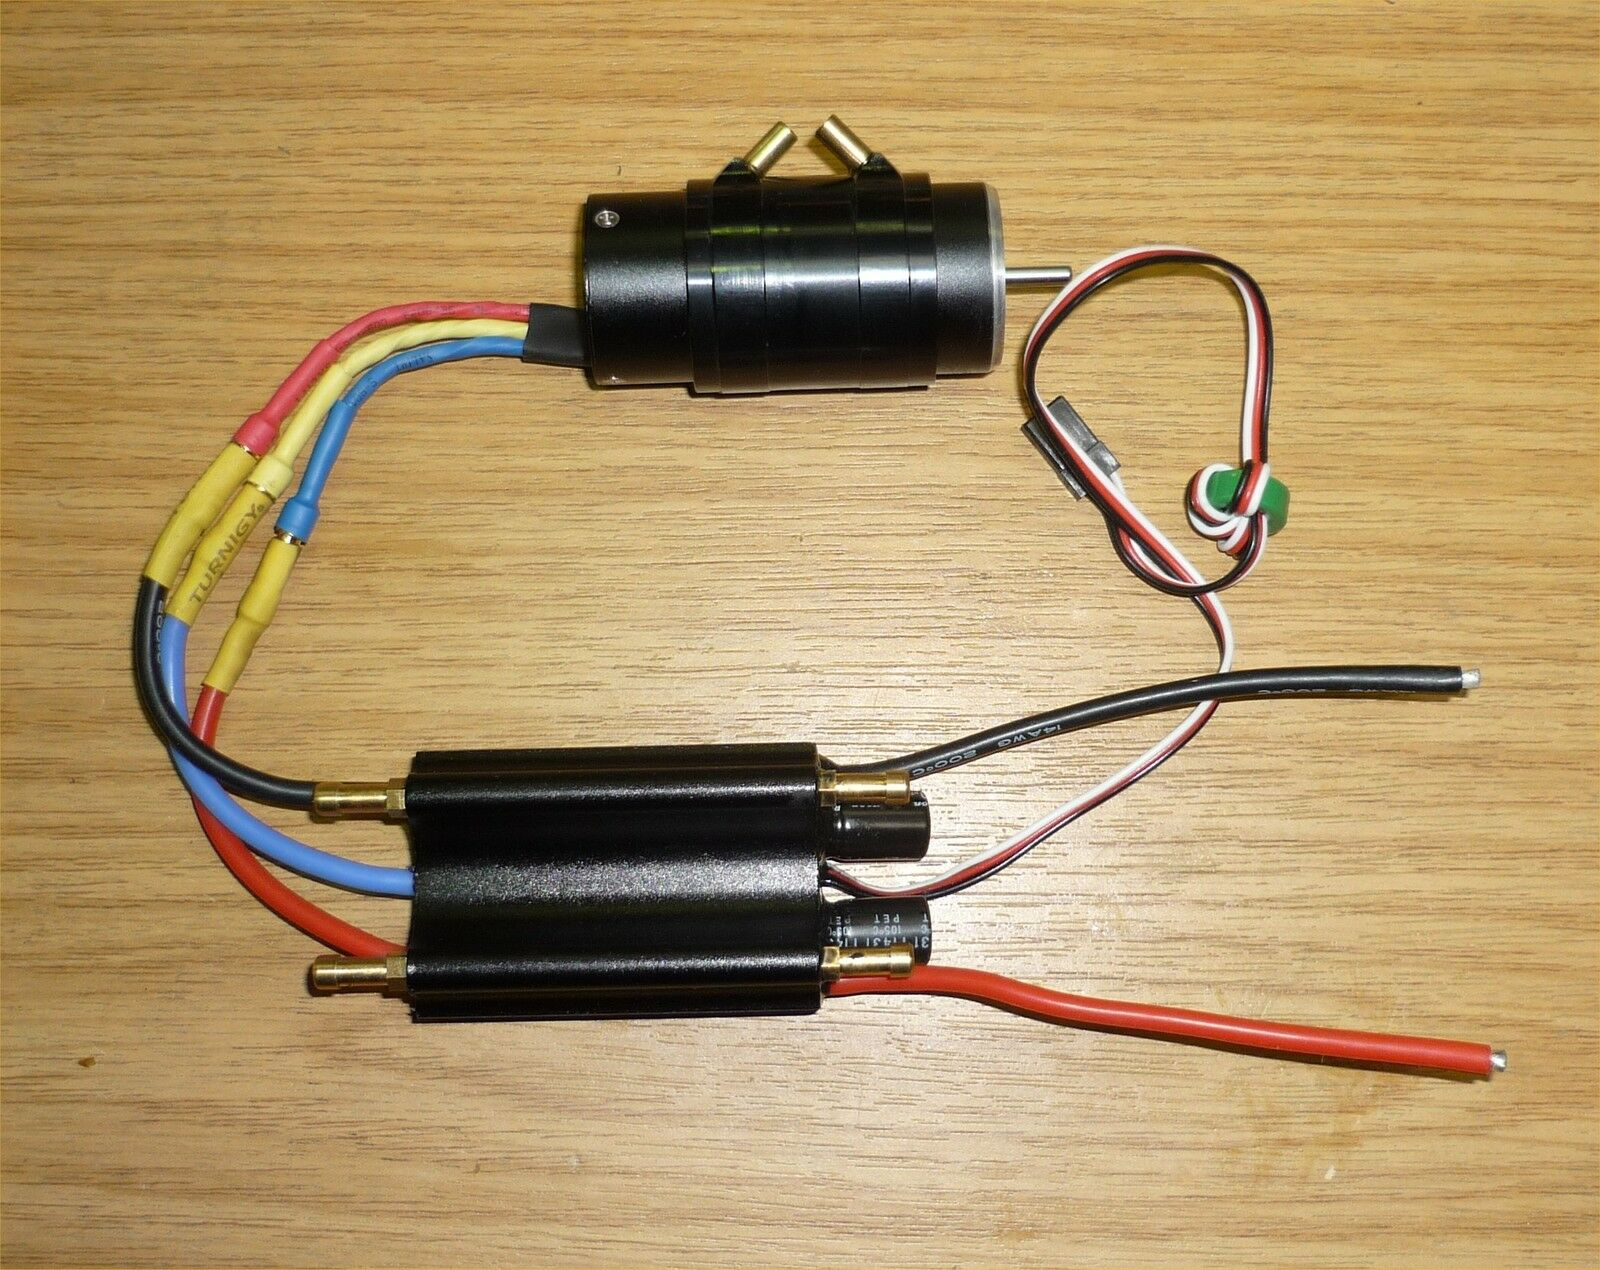 BRUSHLESS WATERCOOLED MOTOR AND ESC  1700KV 2858motor and 50A watercooled ESC